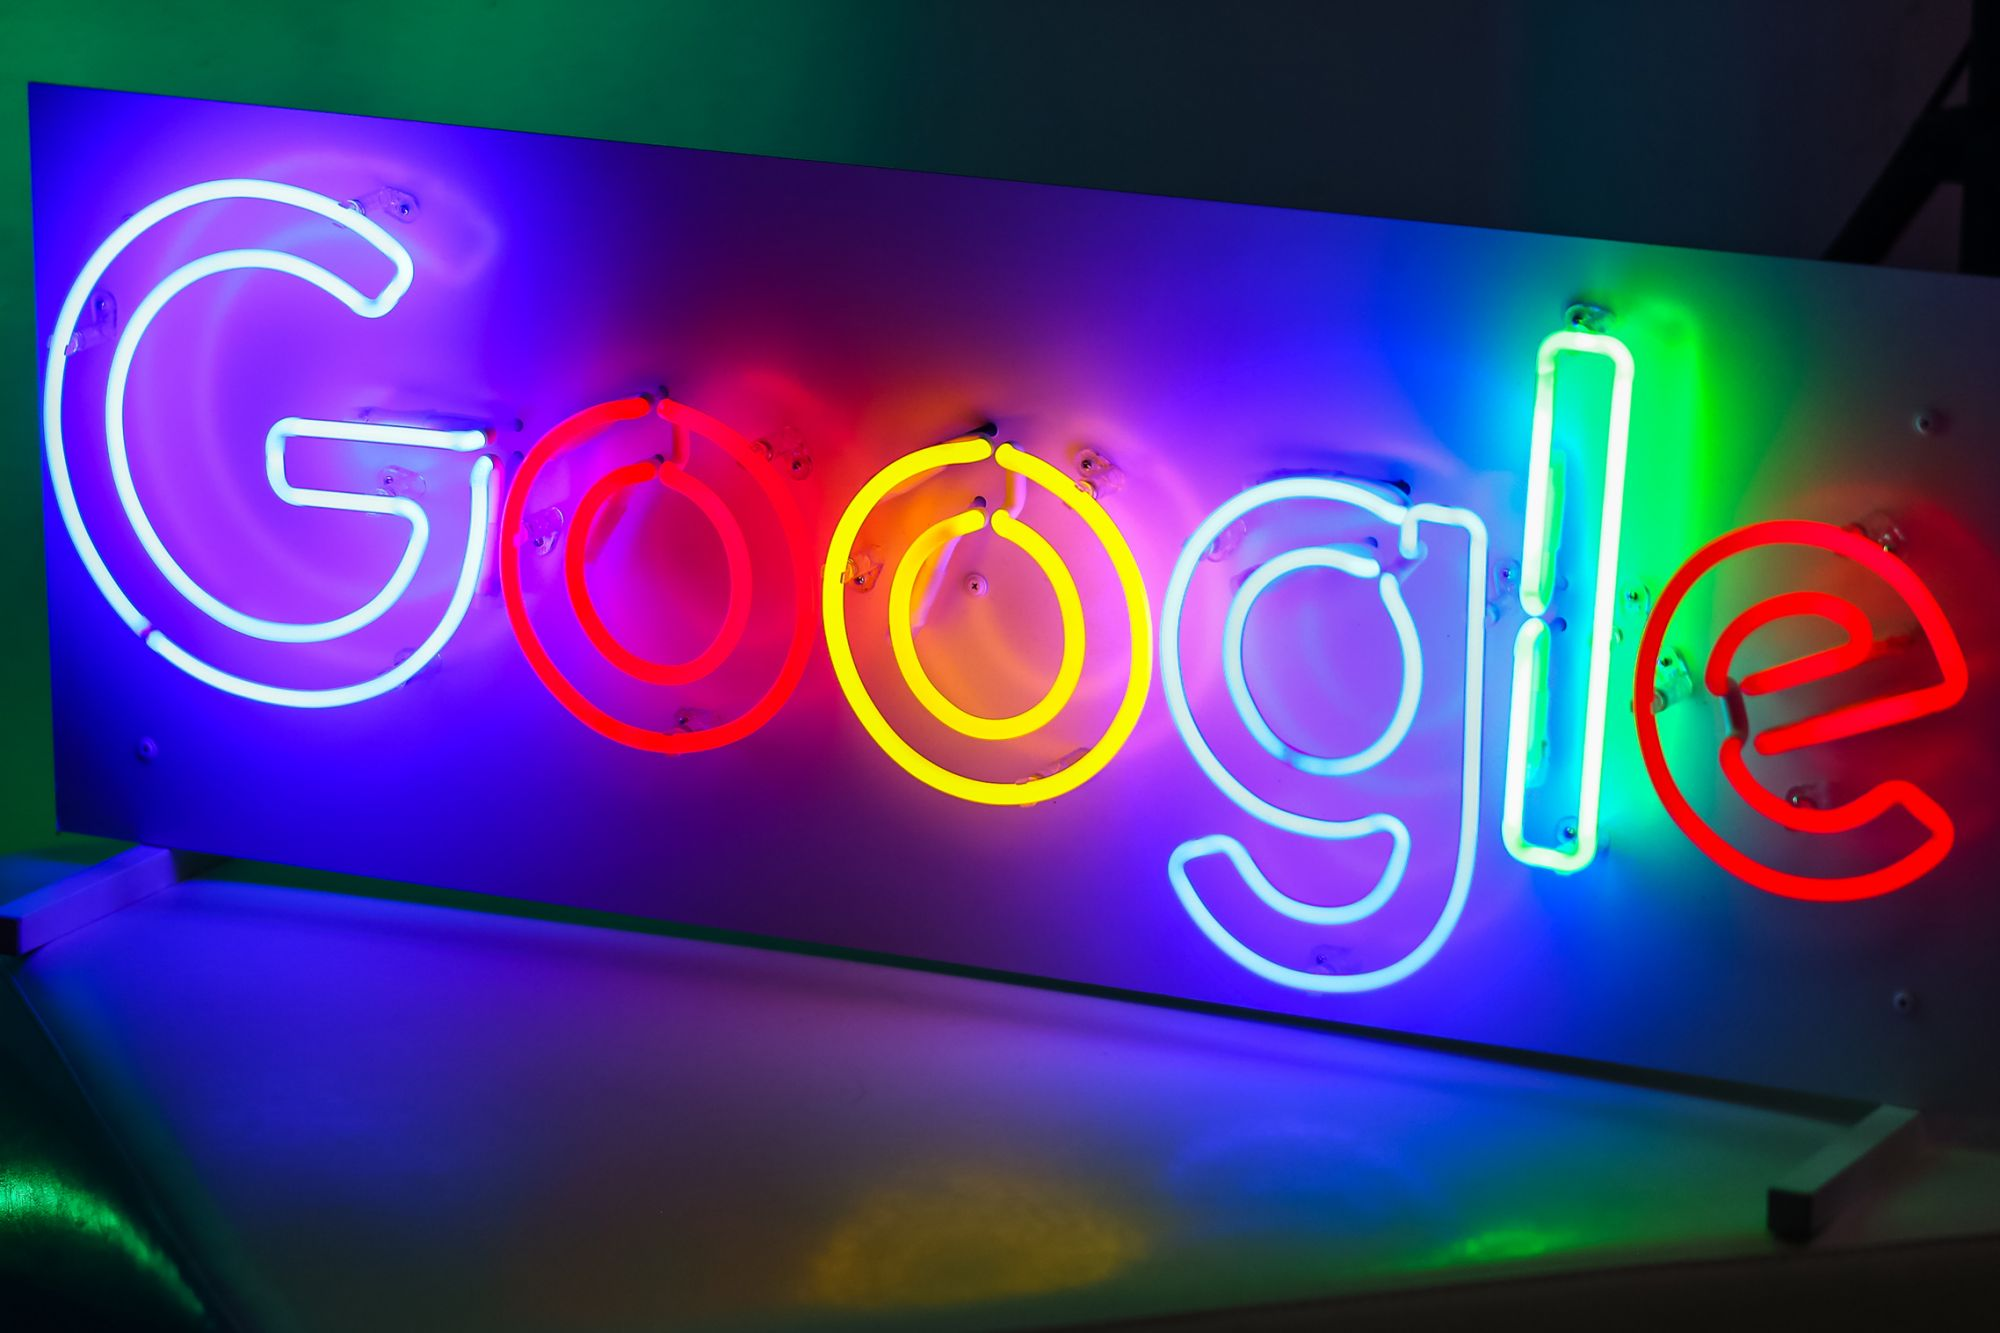 Google Is Up Today, But Experts Still Consider It a 'Sell'